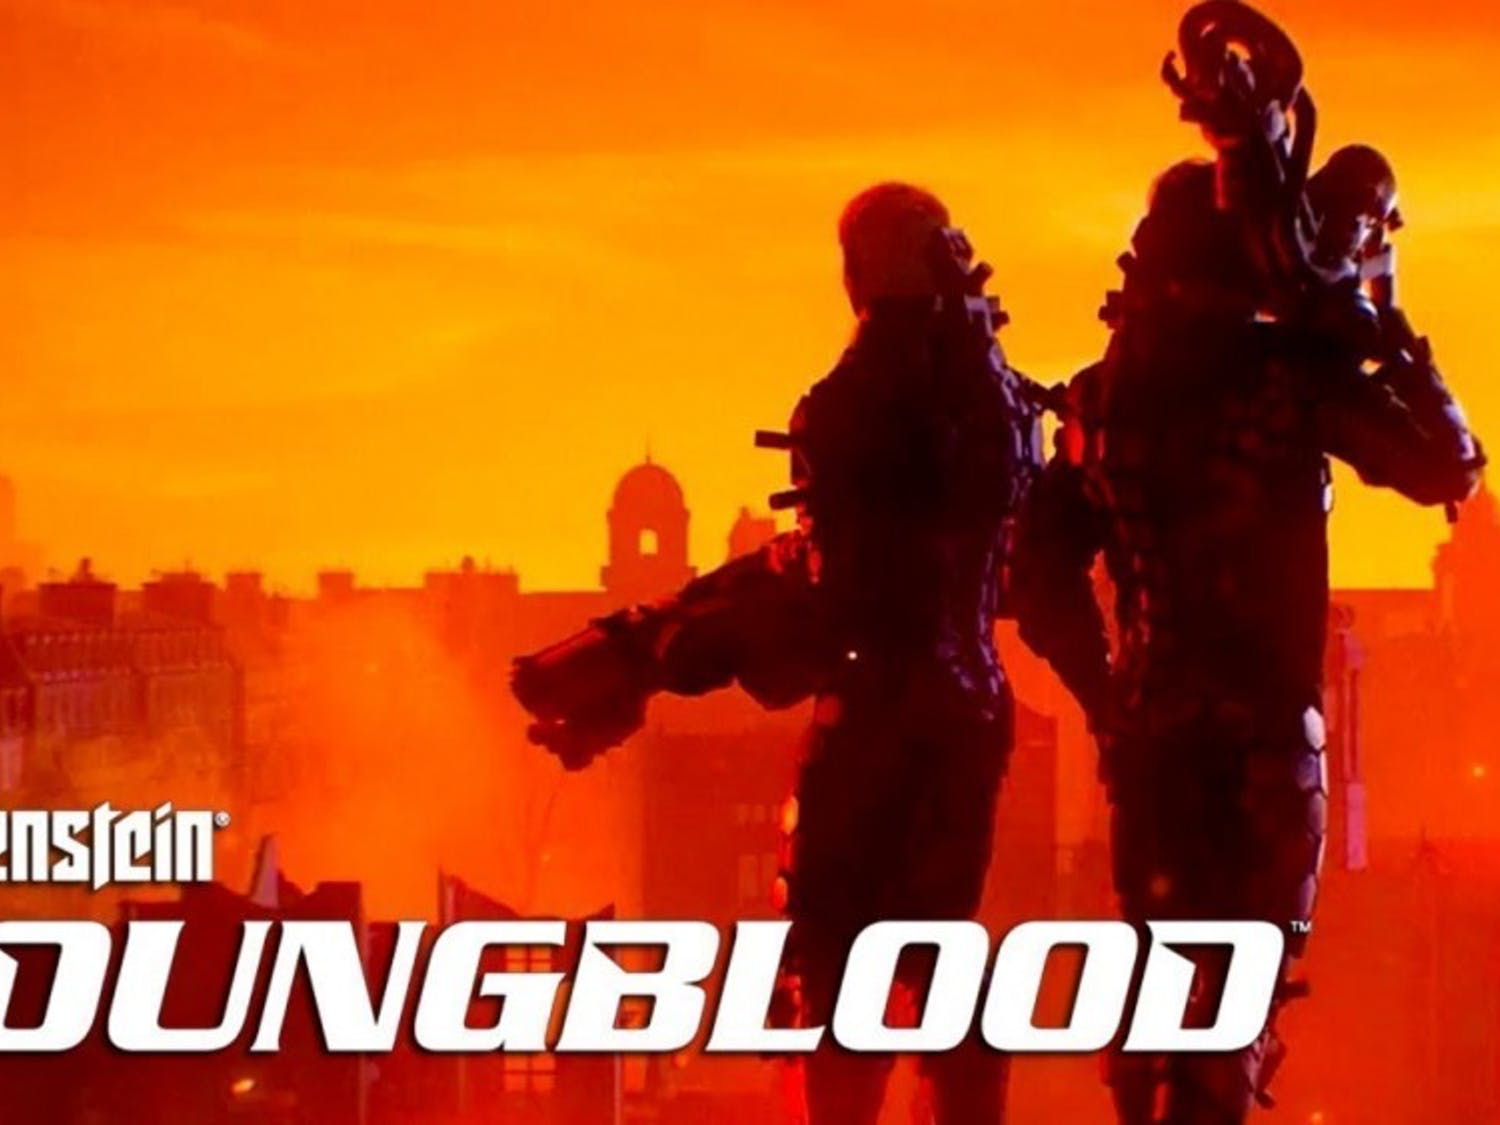 """A spin-off of the classic videogame, """"Youngblood"""" is set to release in July of this year and will be available on most platforms/consoles."""